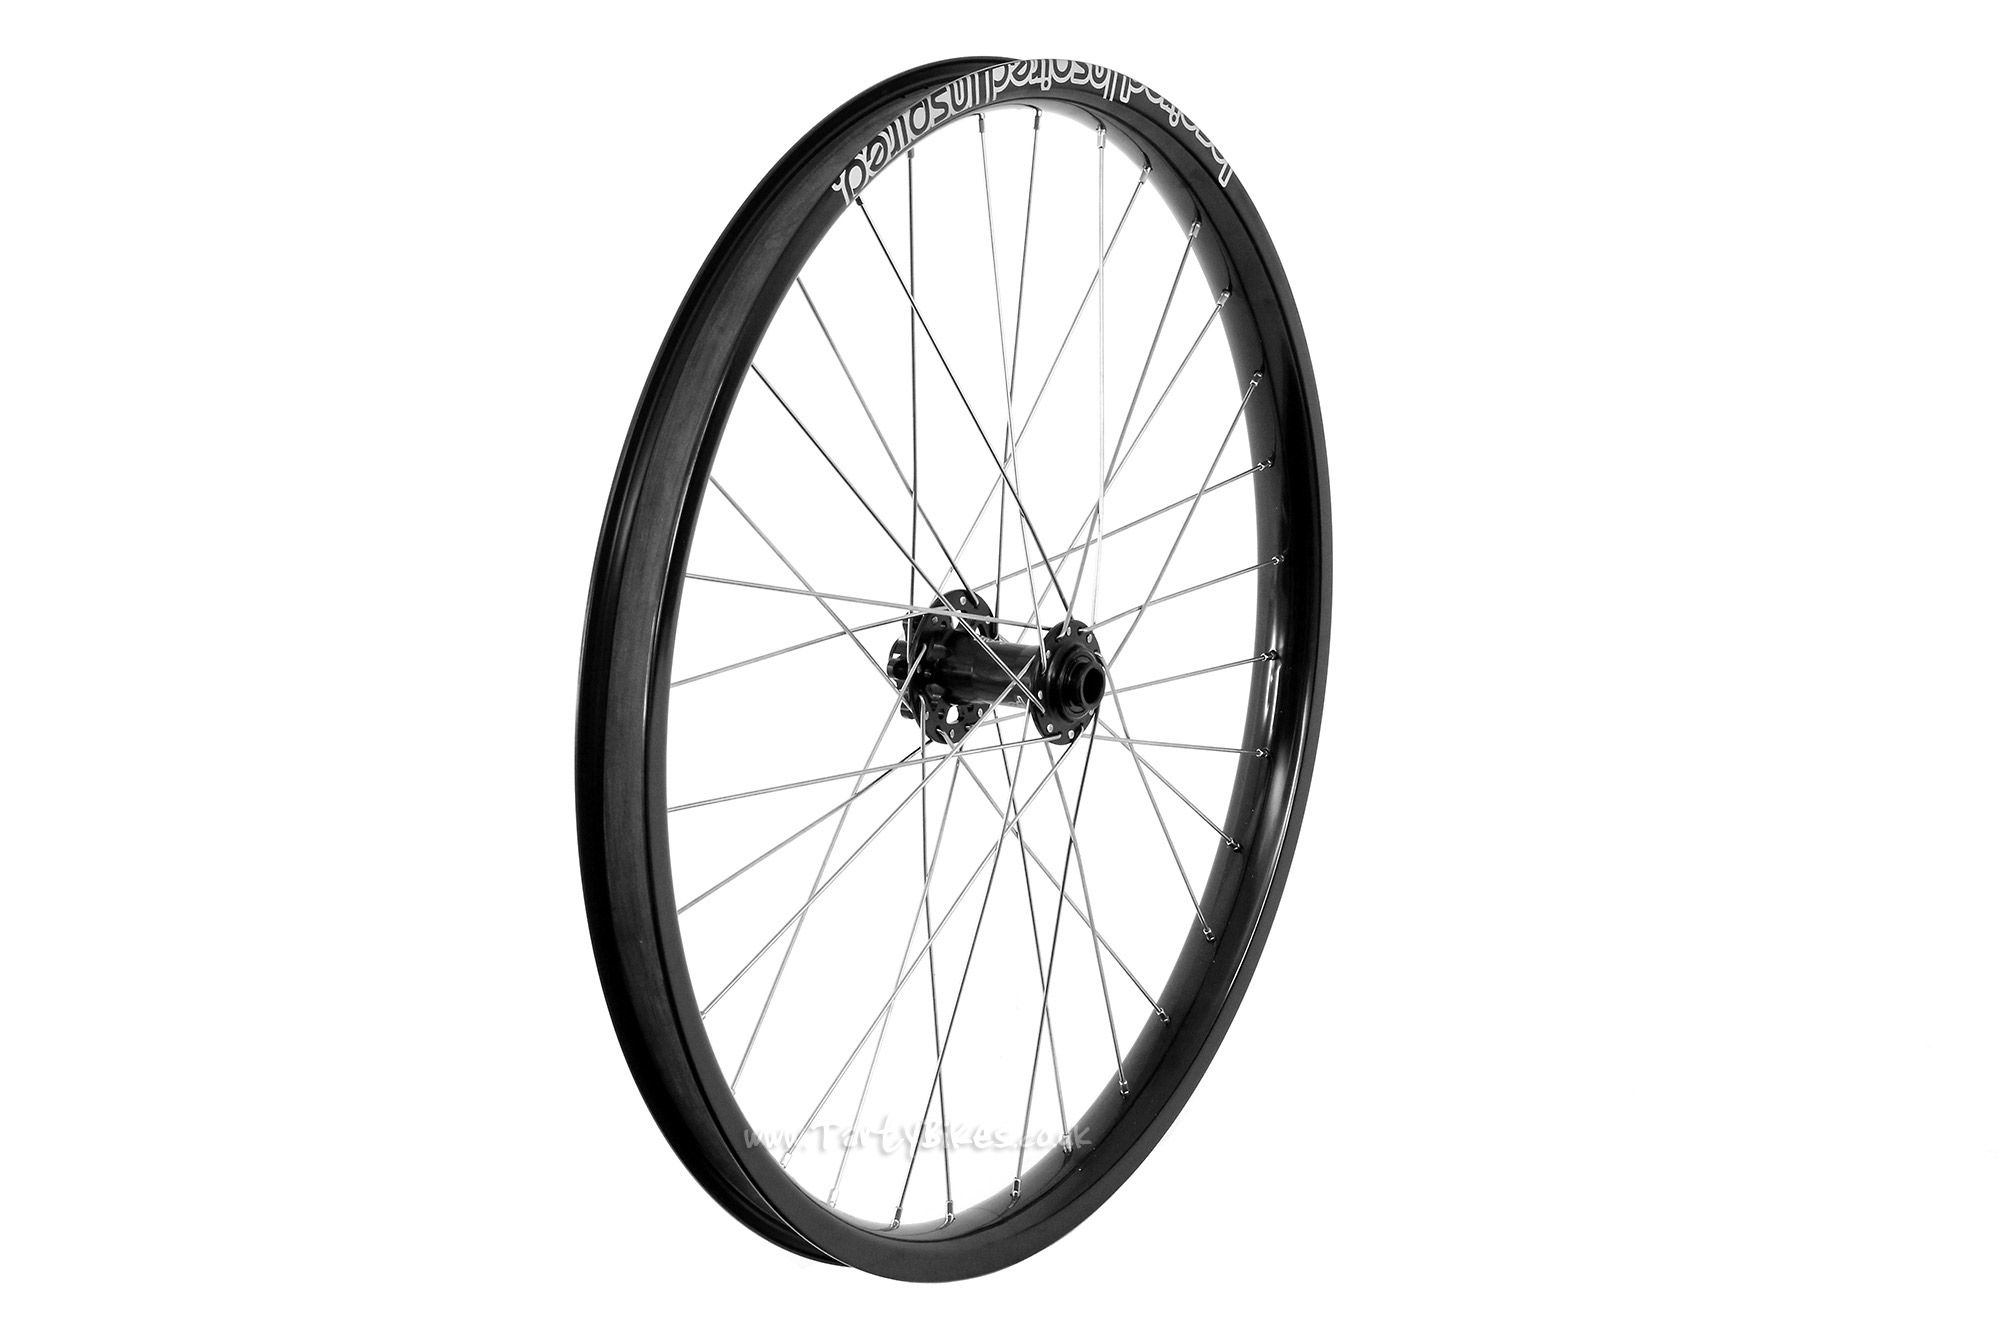 "Inspired Sealed Disc 24"" Front Wheel"